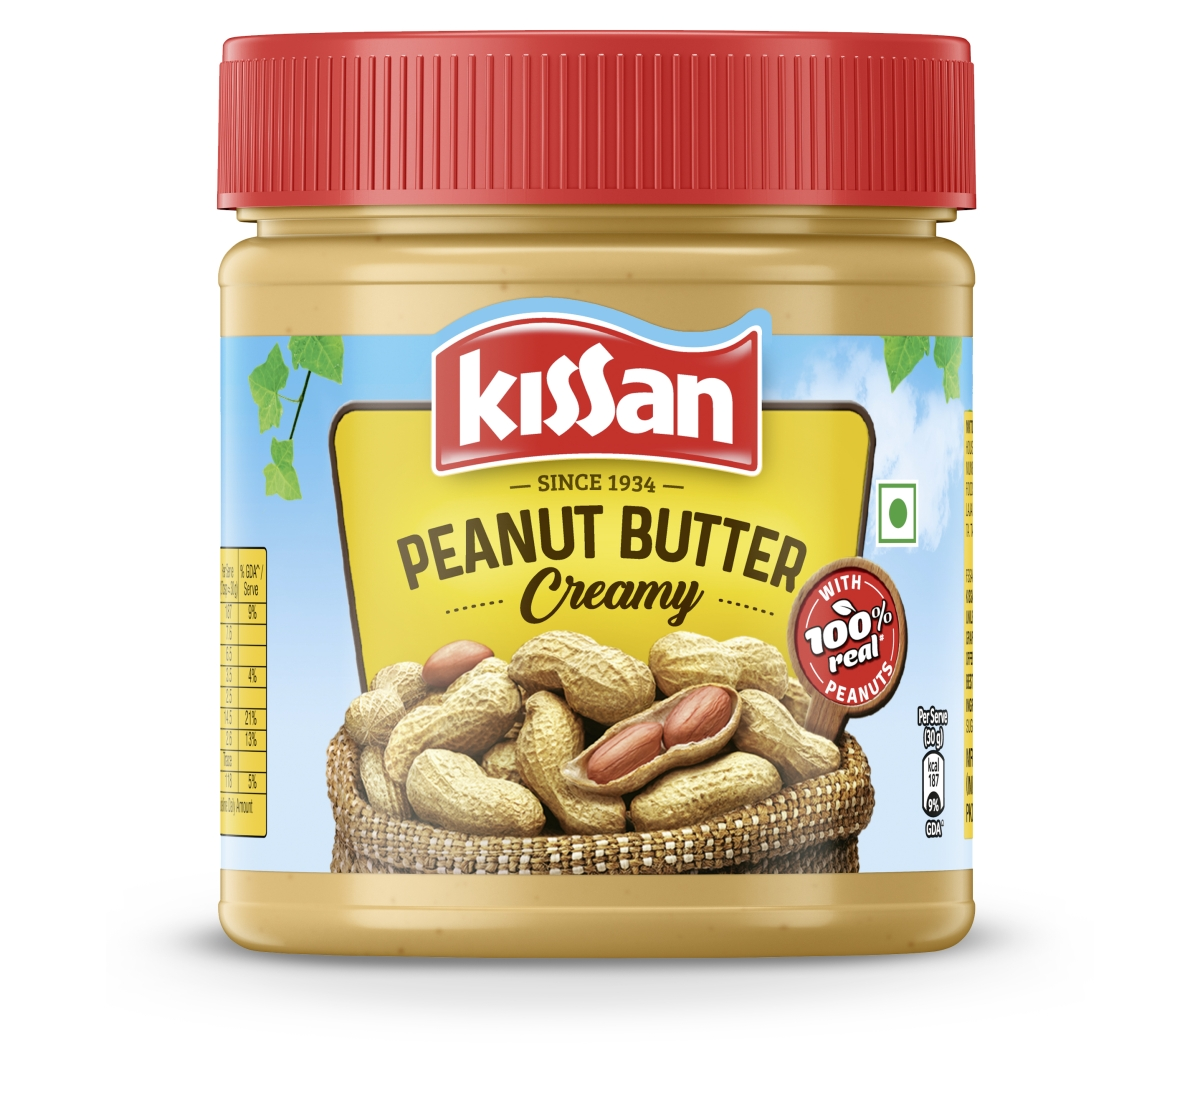 Can Hindustan Unilever's Kissan get Indians to embrace peanut butter like it did with jam?